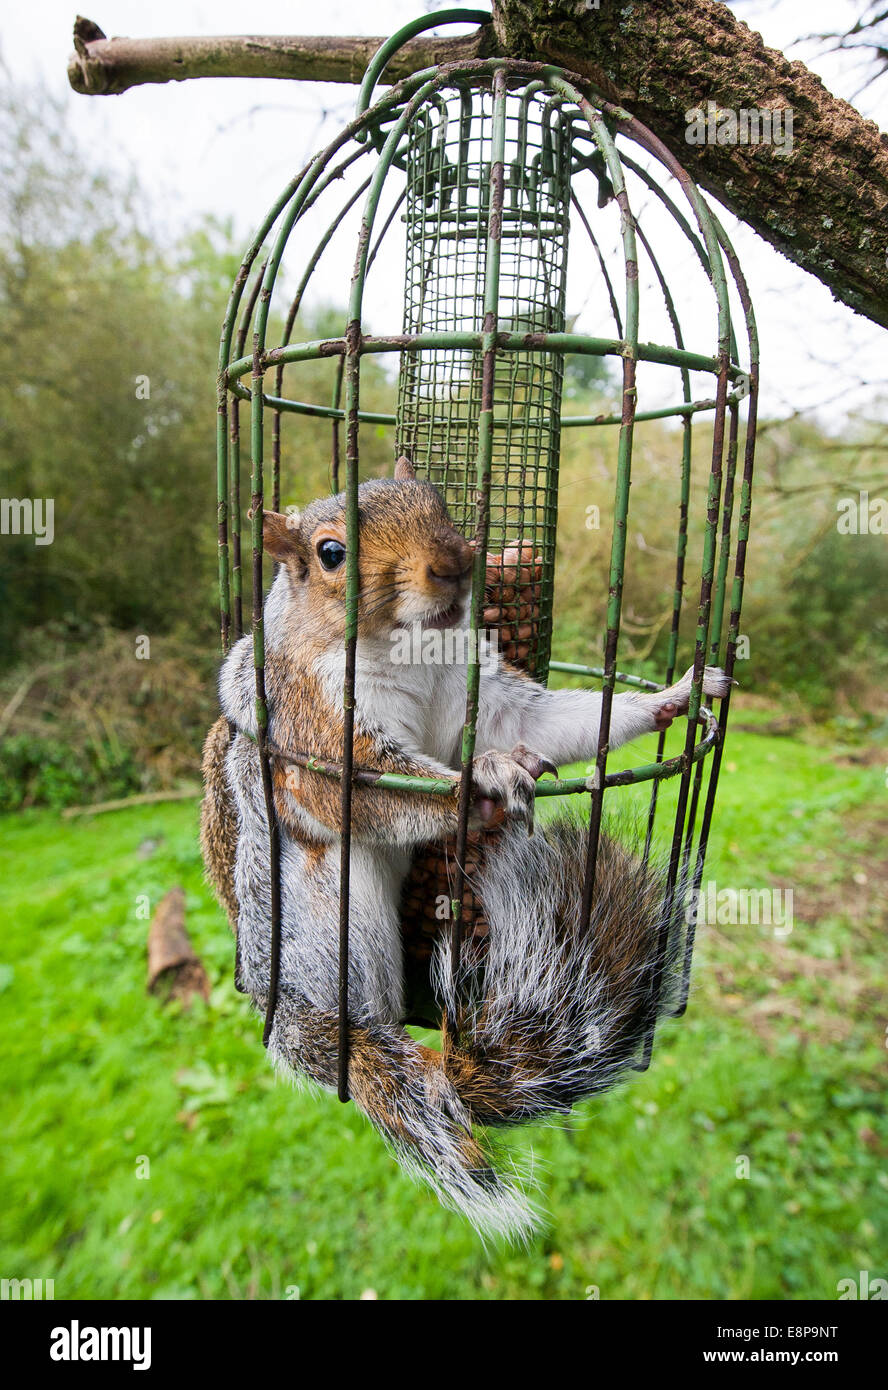 with proof blogs bird squirrel squirrelproof problem slacktivist to another feeders feeder how